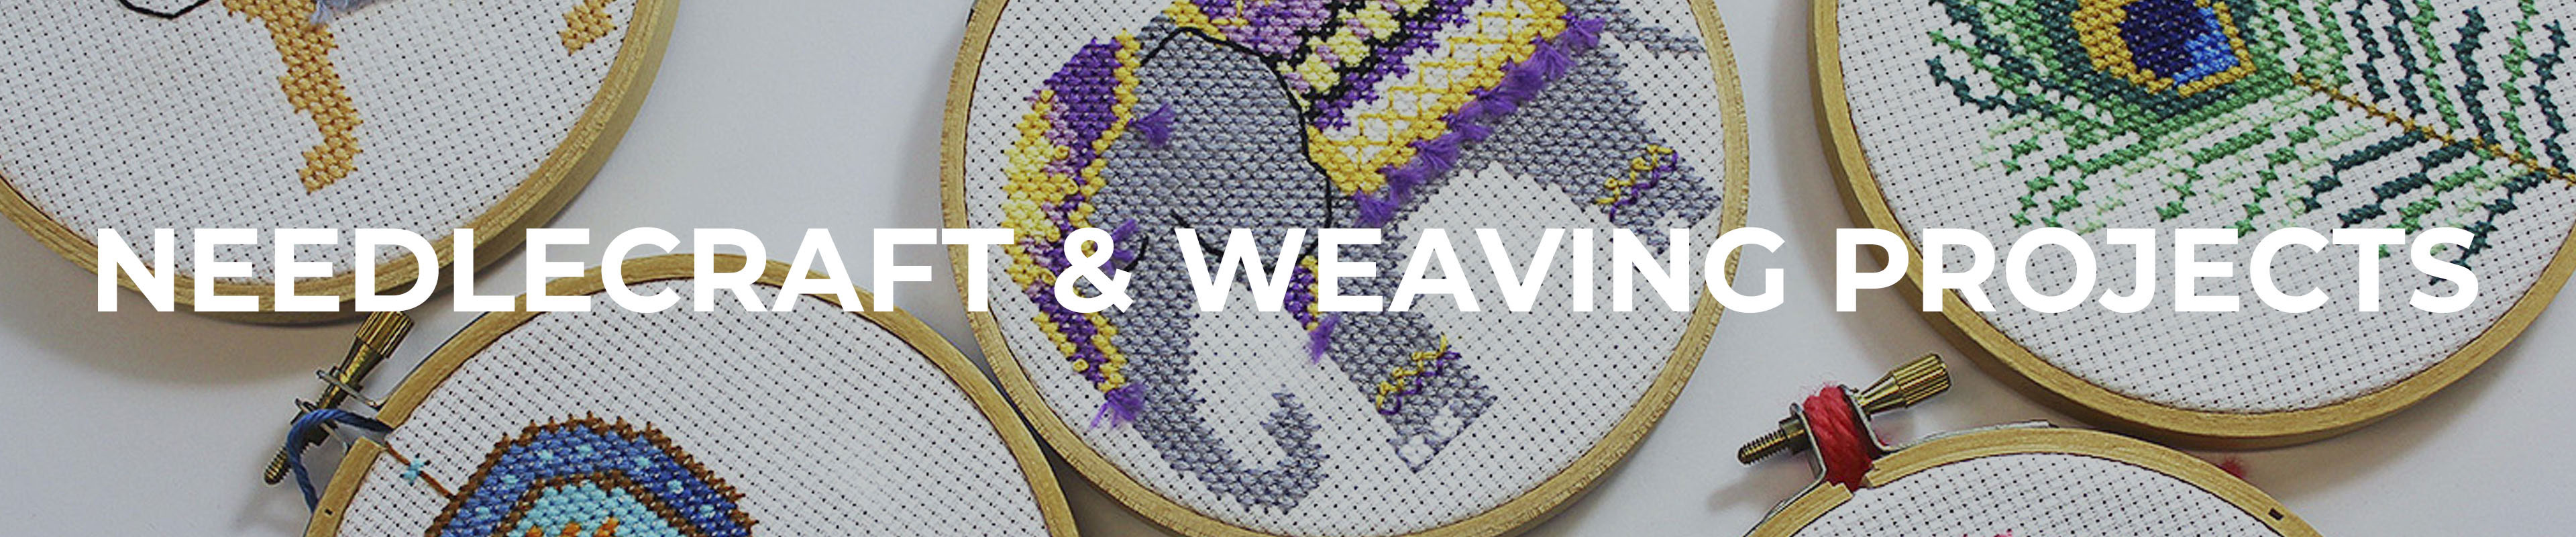 Needlecraft & Weaving Projects